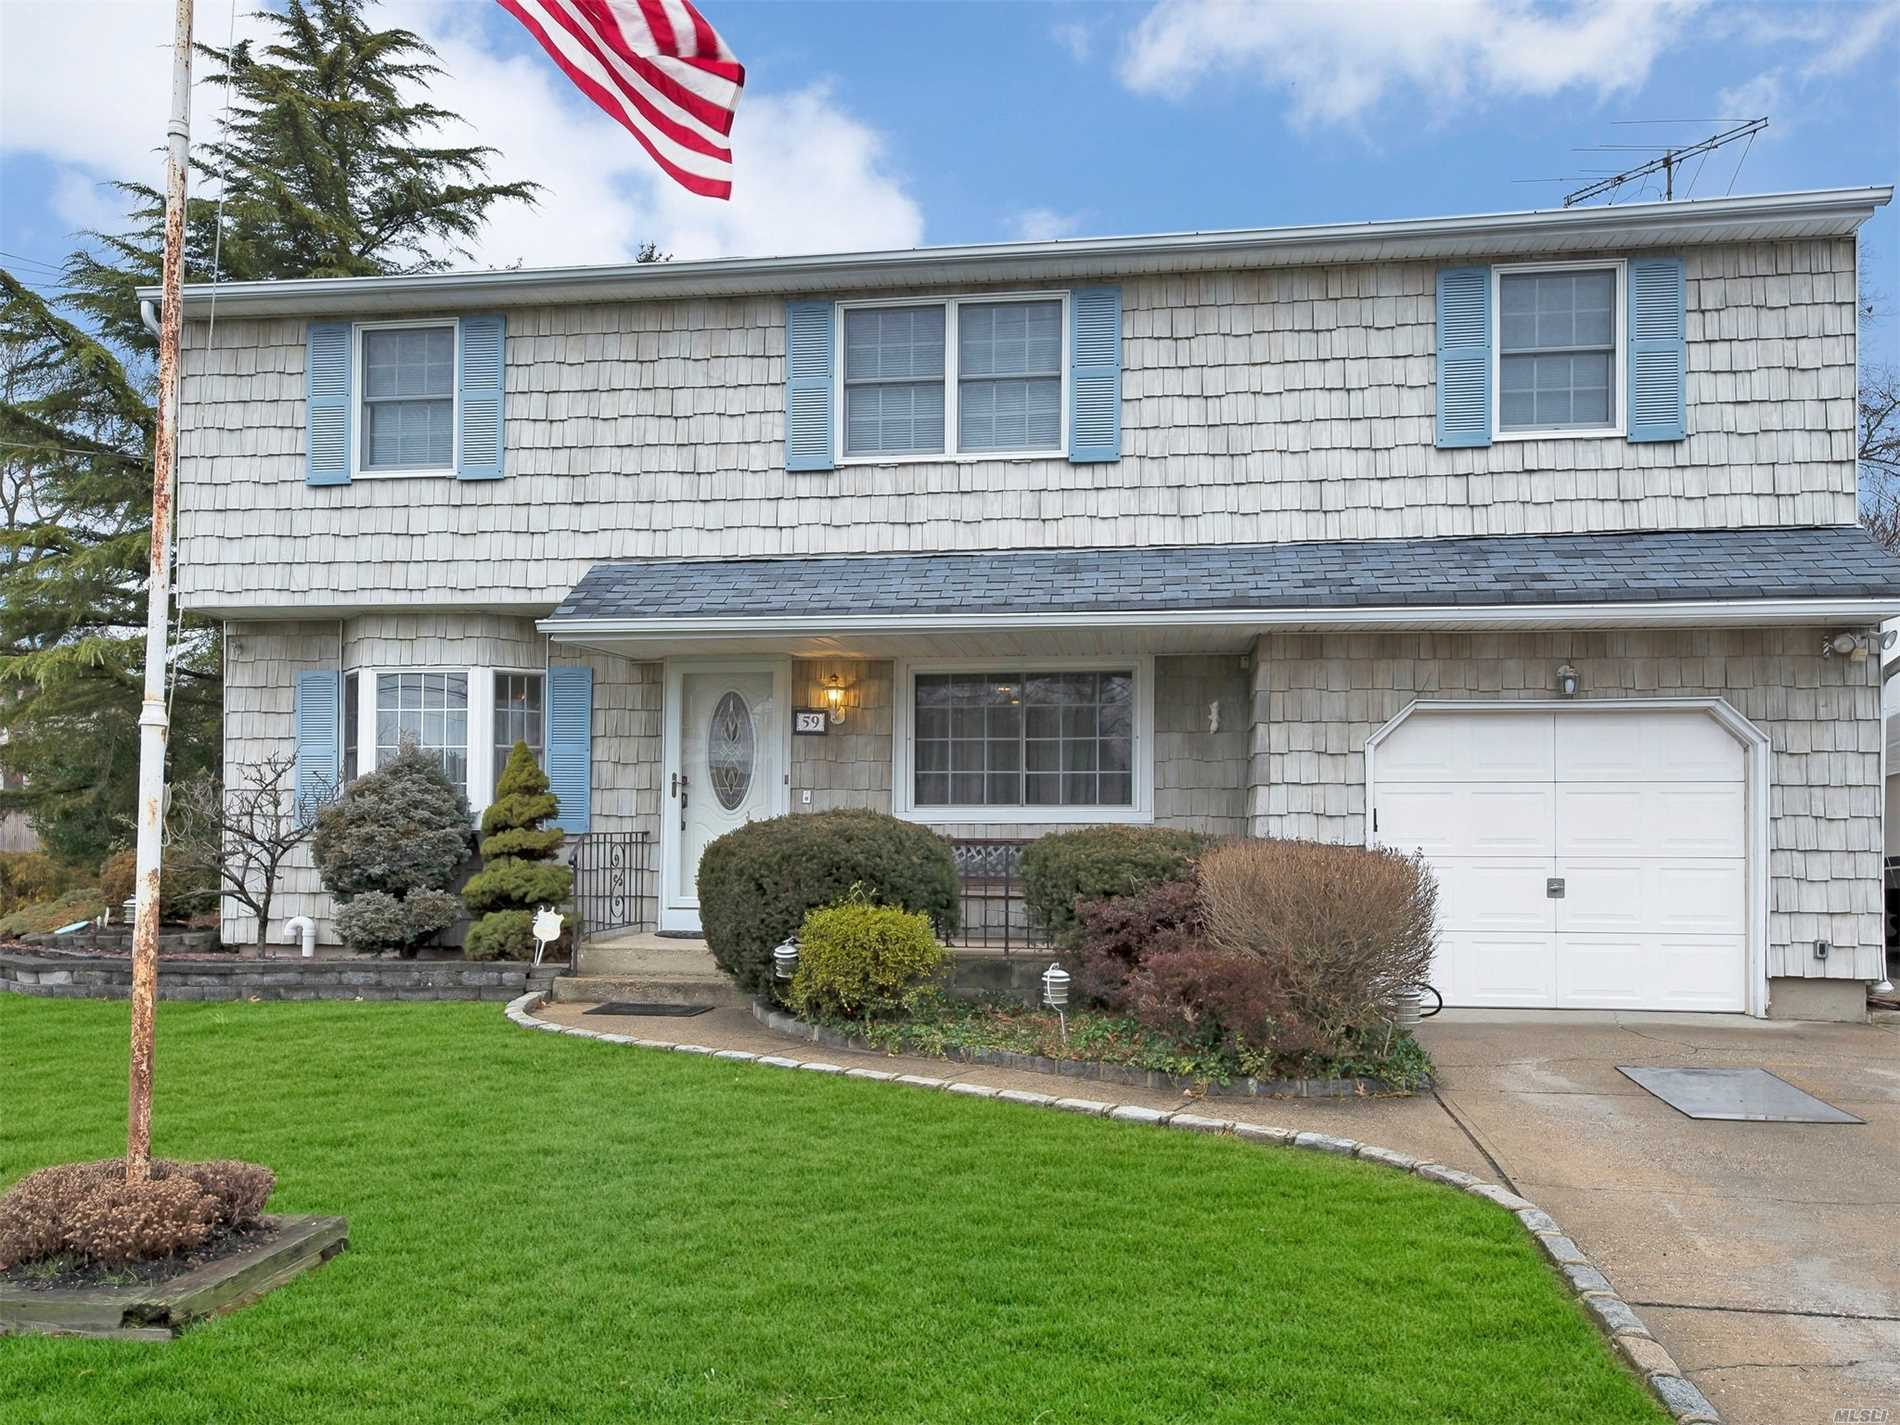 Beautiful, 5 Bedroom Meticulously Maintained Colonial With Office And Sunroom This Home Sits On A Well-Manicured Corner Lot In A Quiet Neighborhood. A Perfect Home For A Growing Family.